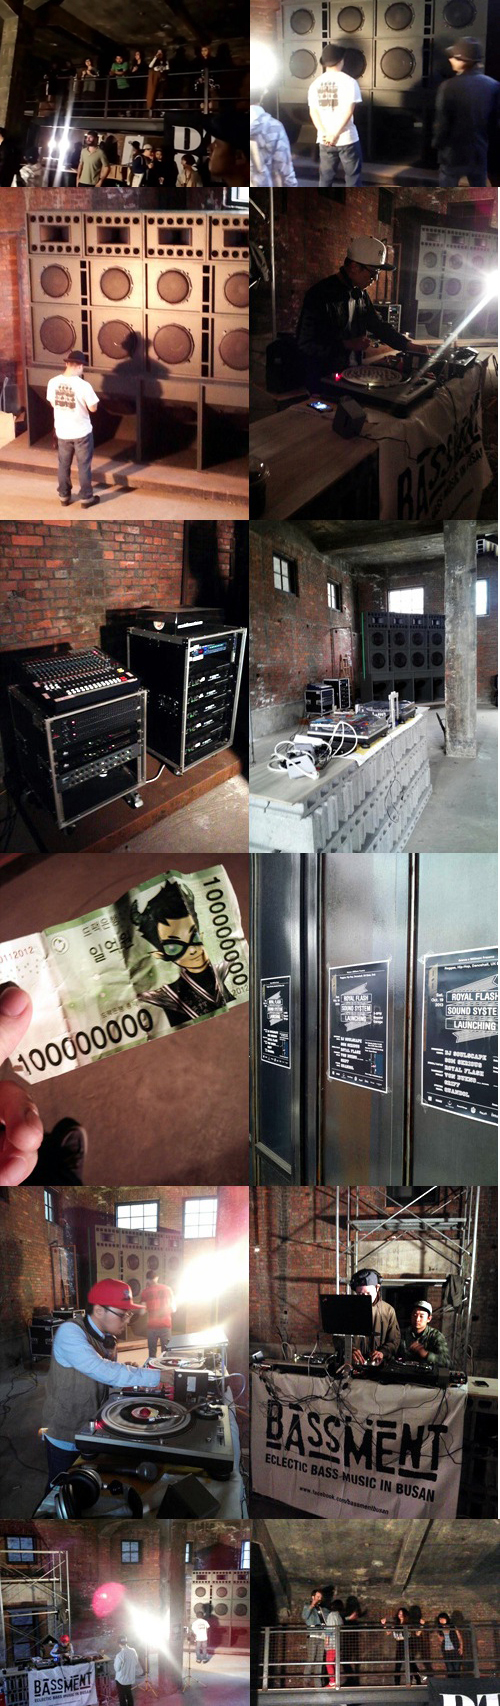 Royal Flash Sound System Launch 영상/사진